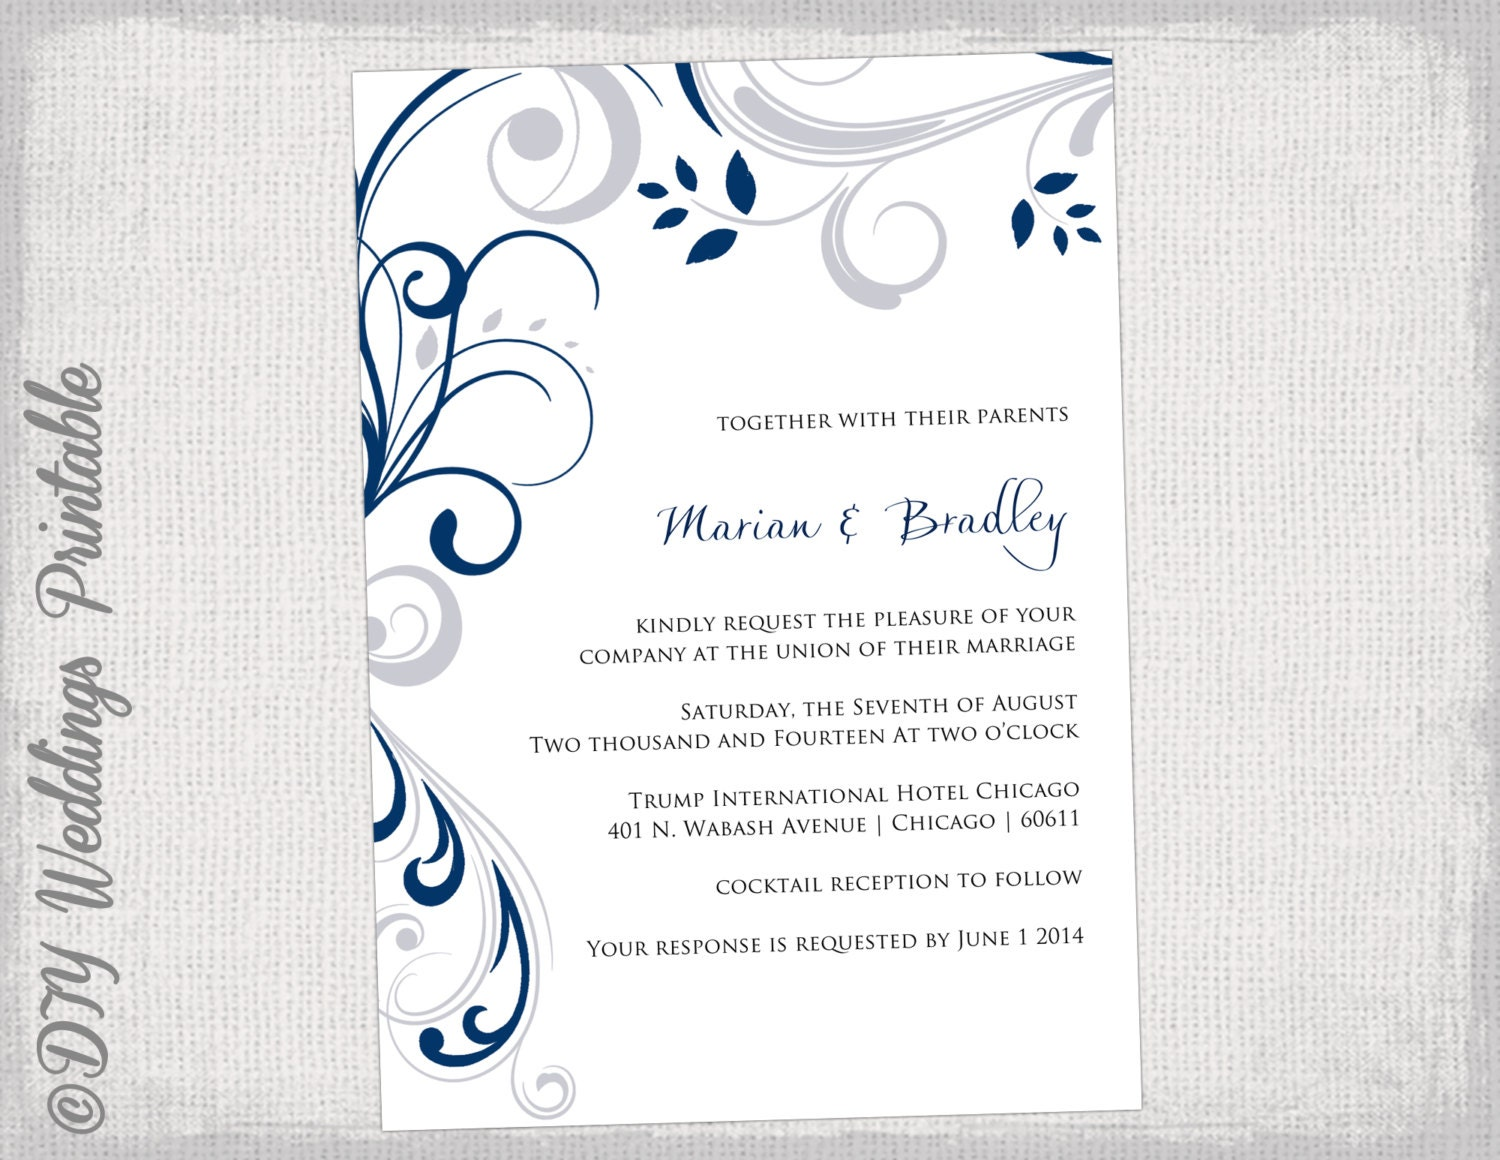 Wedding Invitation Free Download Software: Printable Wedding Invitation Templates Silver Gray And Navy